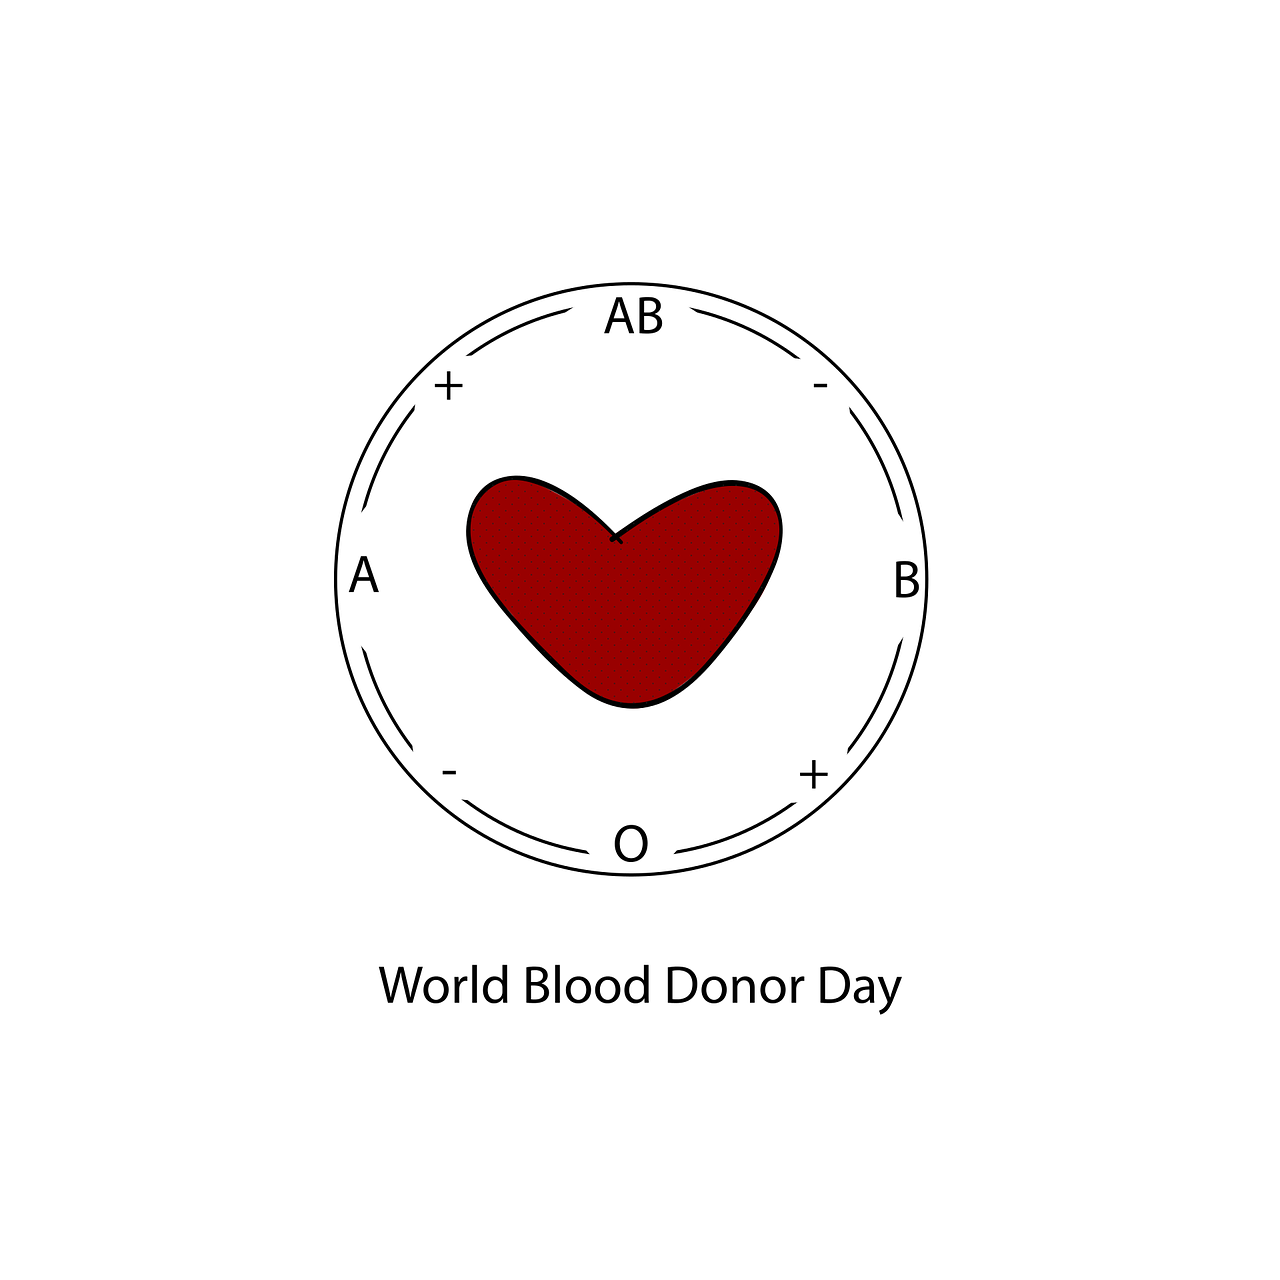 World Blood Donor Day sticker by siberian_beard of Pixabay.